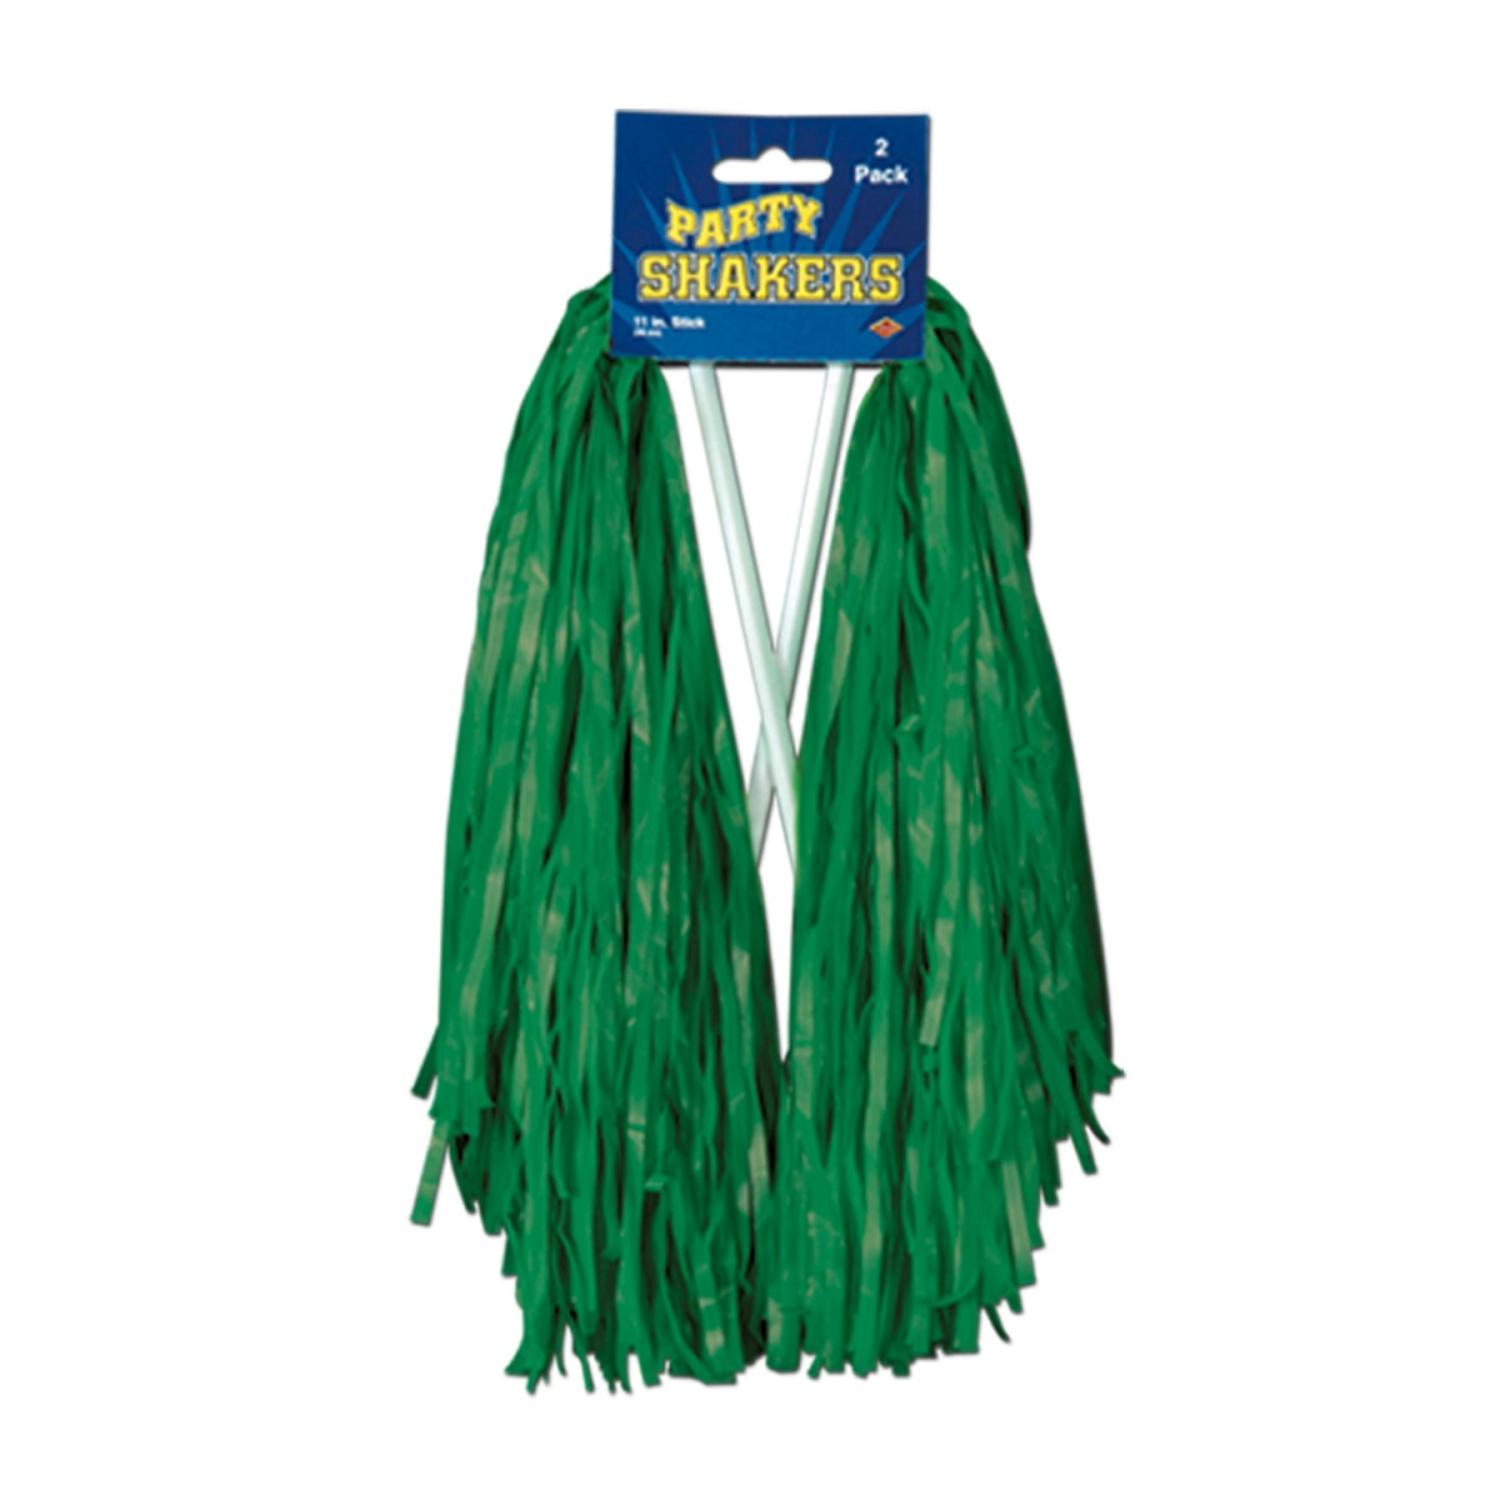 Club Pack of 48 Pre-Packaged Kelly Green Football Themed School Spirt Poly Shakers 12